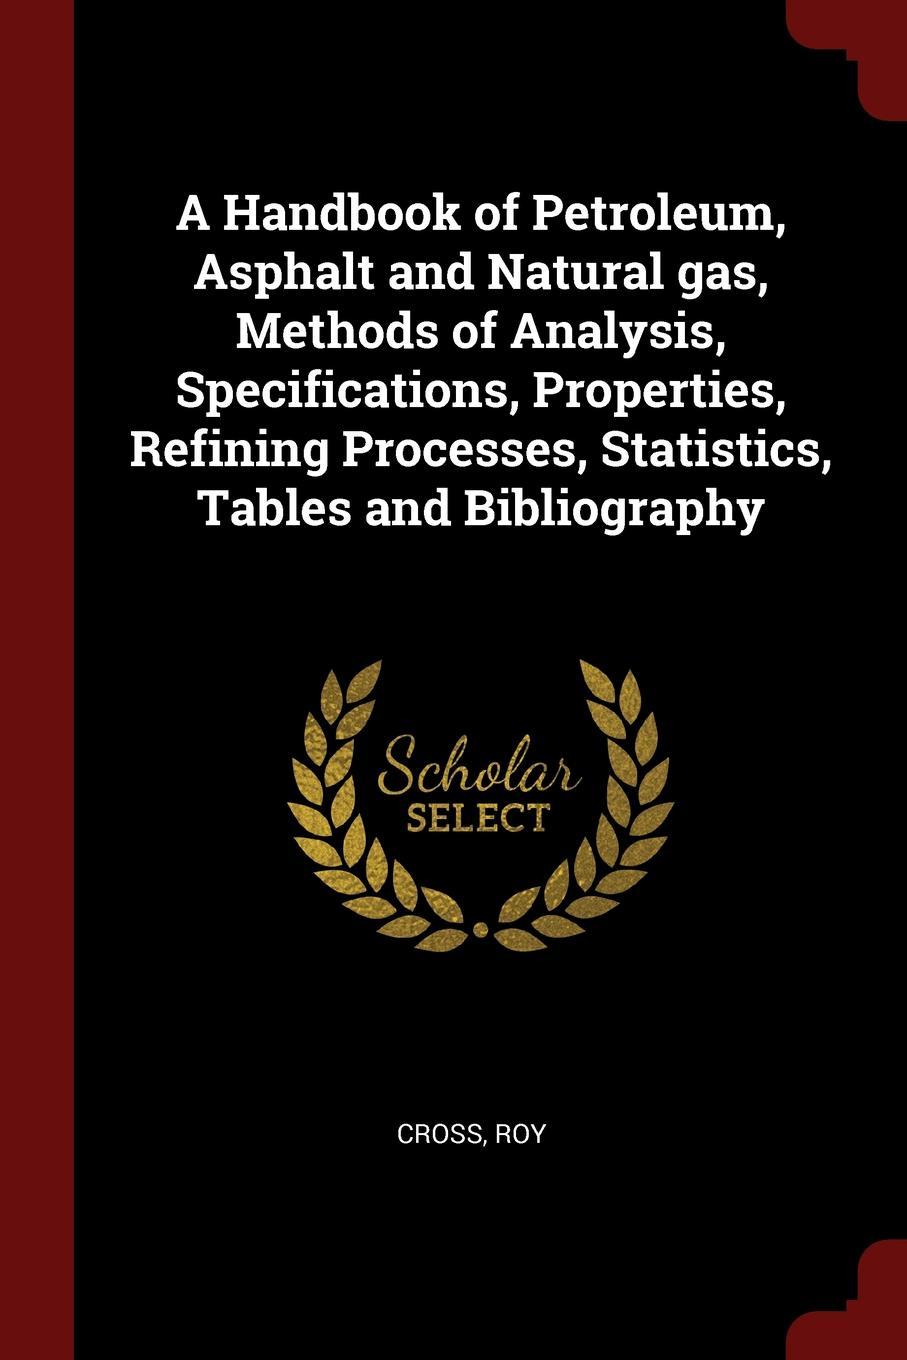 лучшая цена Roy Cross A Handbook of Petroleum, Asphalt and Natural gas, Methods of Analysis, Specifications, Properties, Refining Processes, Statistics, Tables and Bibliography